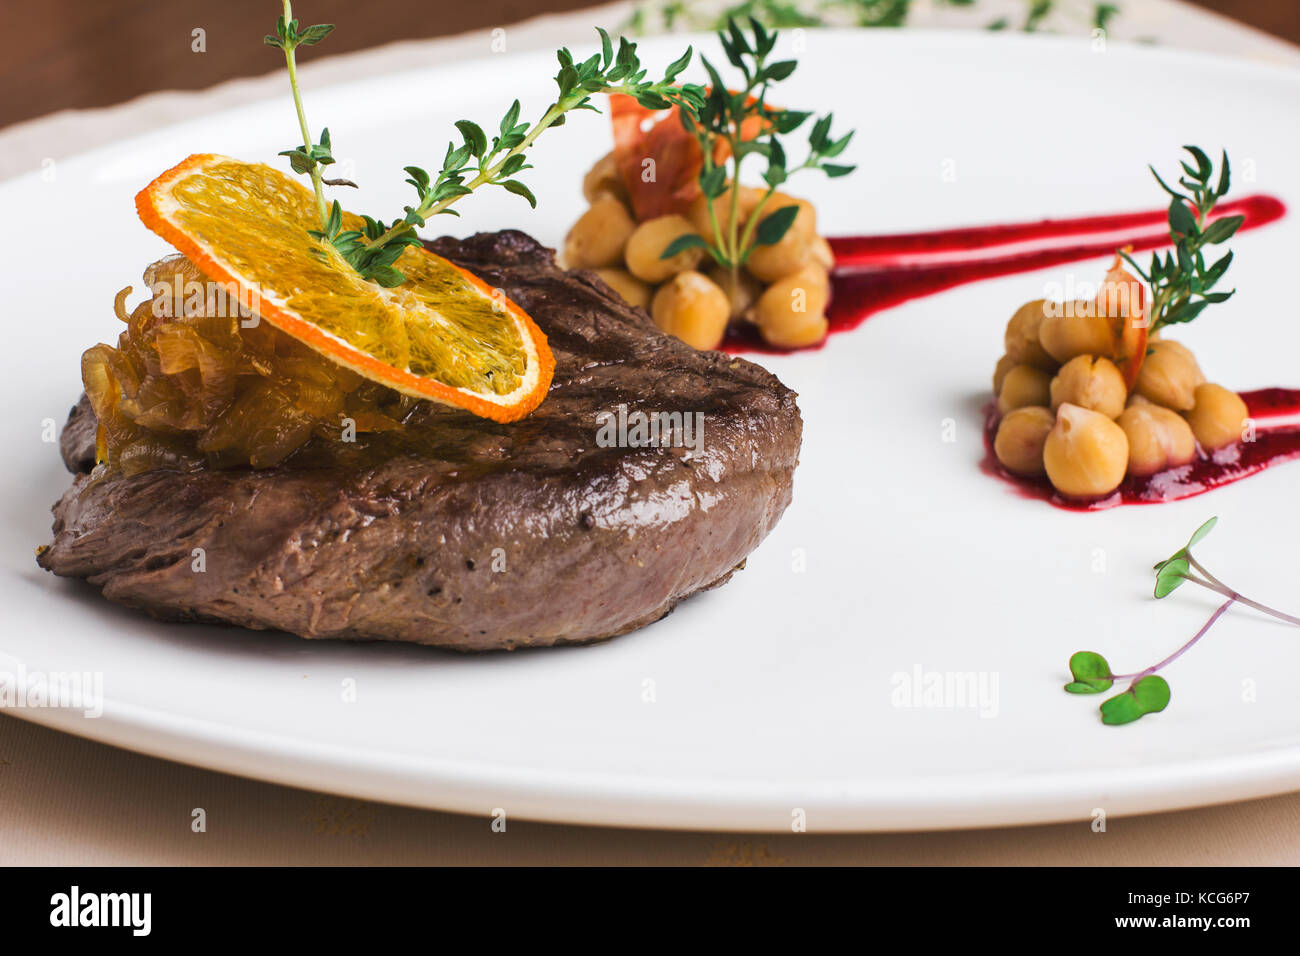 Juicy beef steak with orange sauce with greens and chickpeas - Stock Image